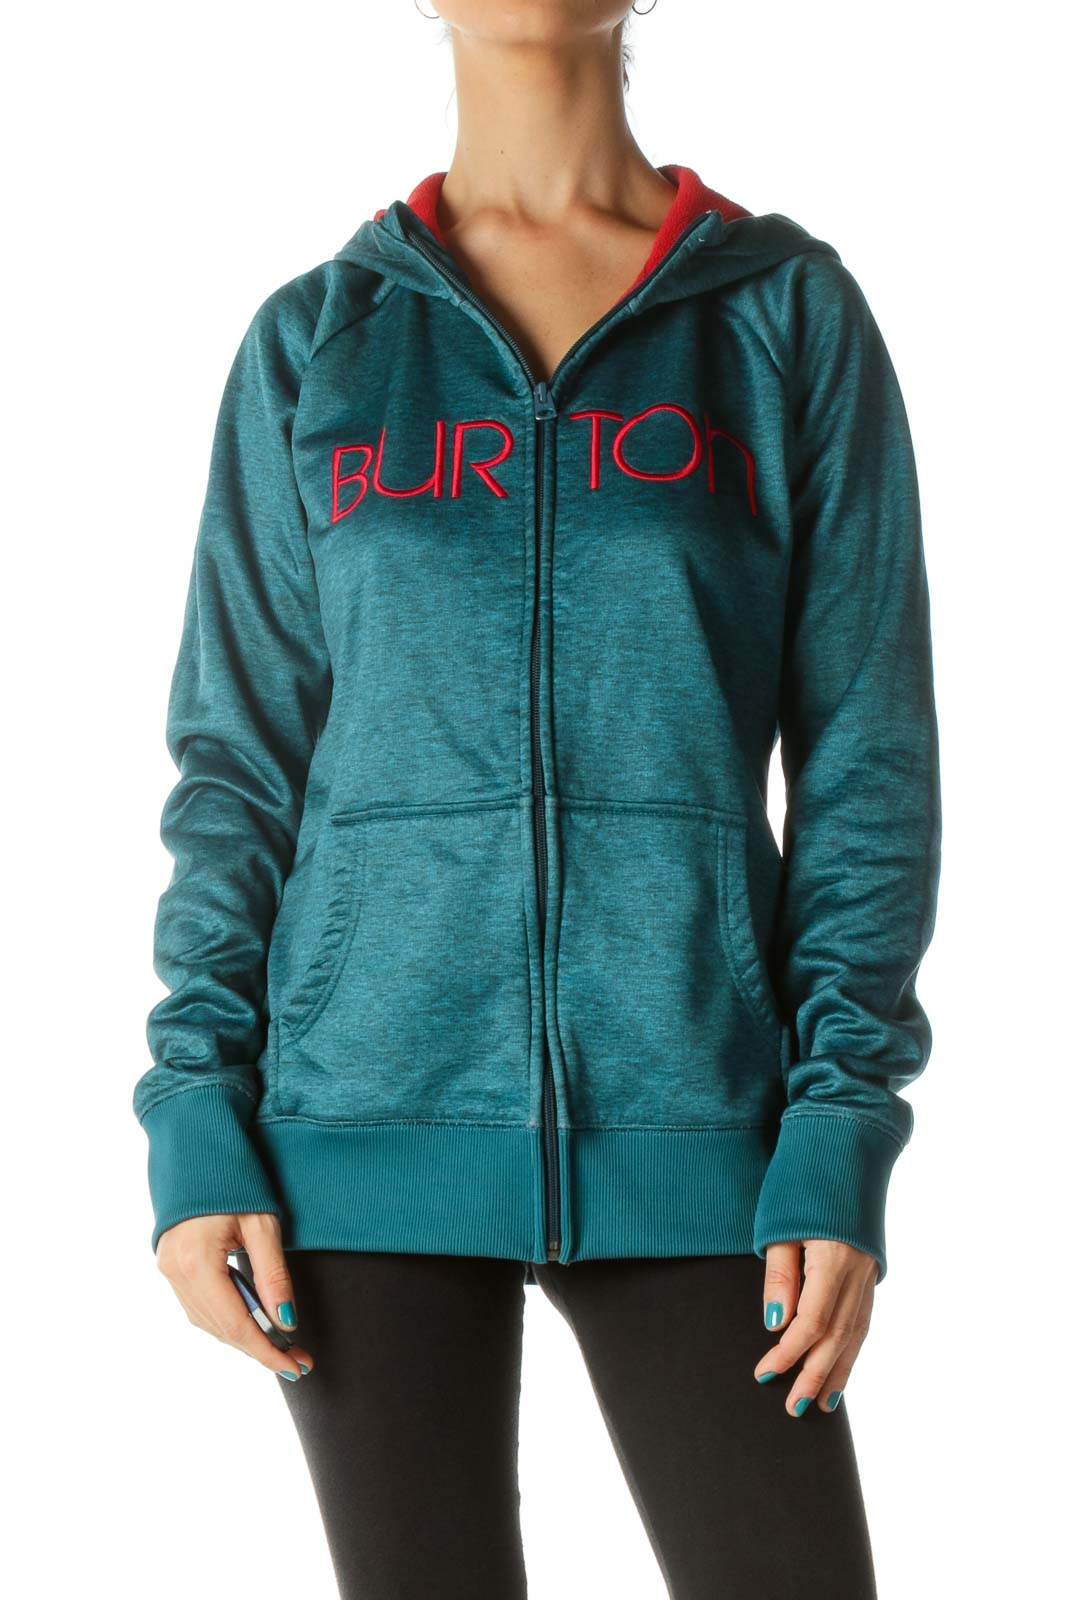 Emerald Green Red Soft-Feel Zip-Up Jacket